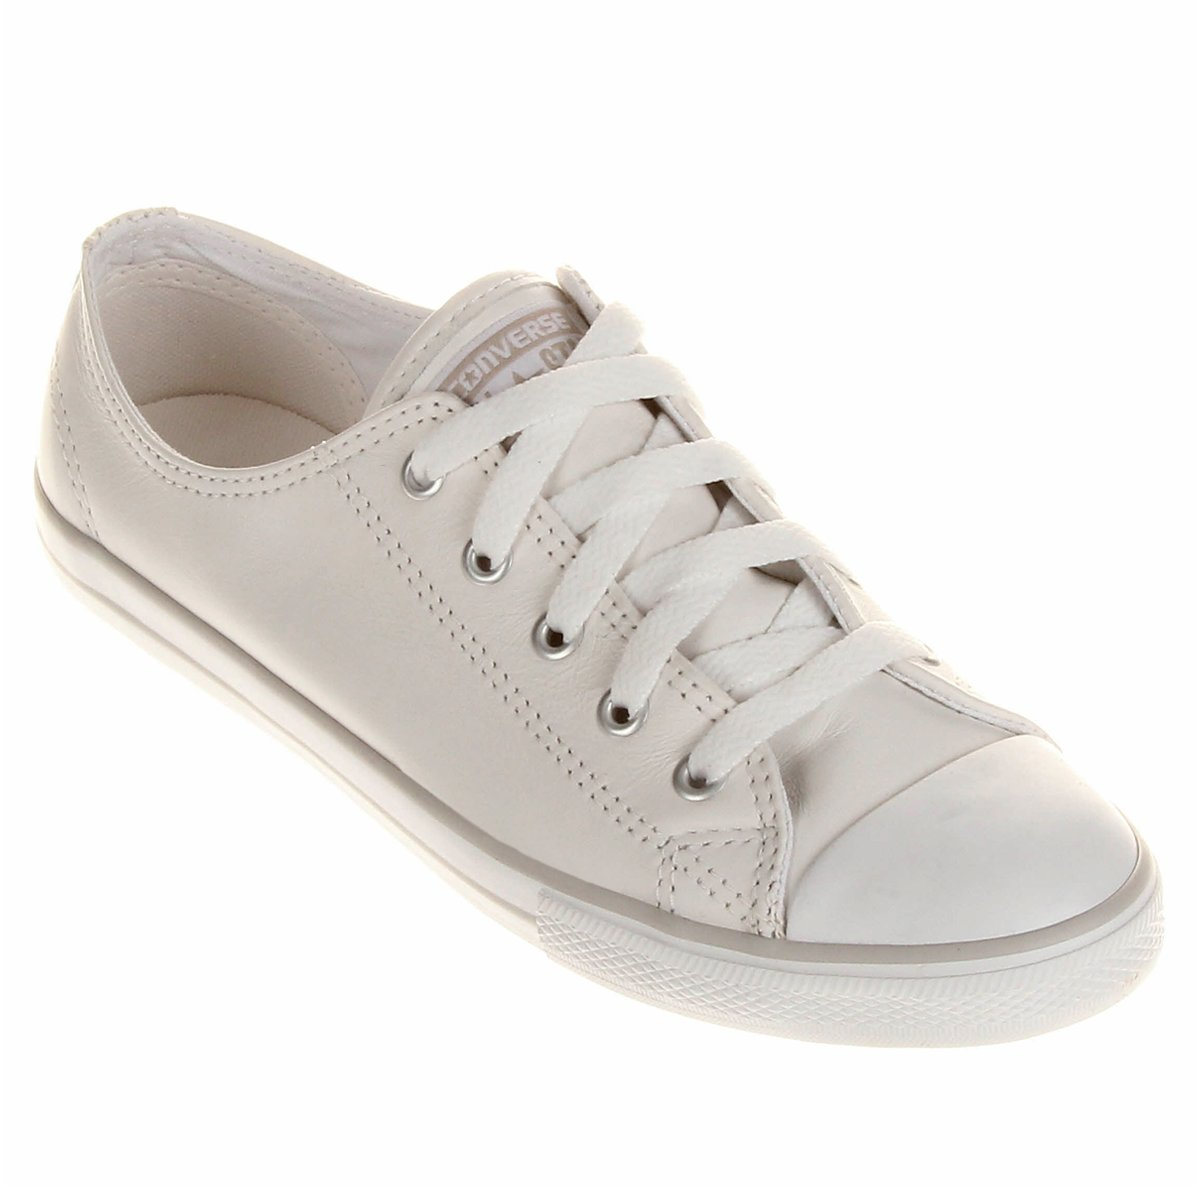 51383b8ff8d Tênis Converse All Star CT AS Dainty Leather OX - Compre Agora